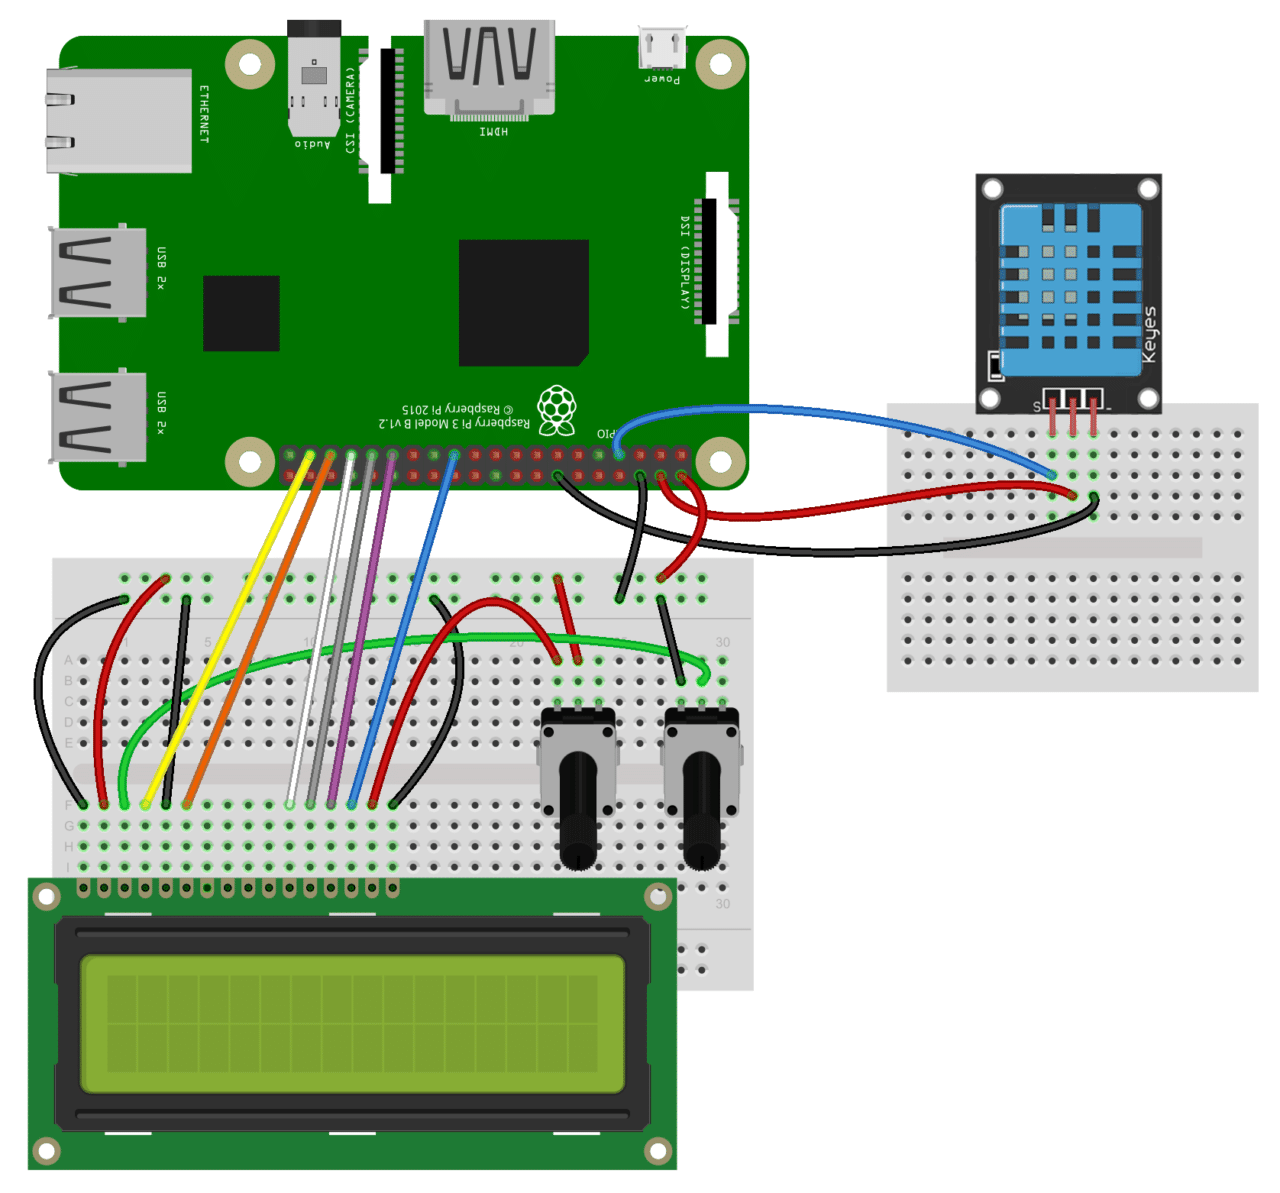 How To Set Up The Dht11 Humidity Sensor On Raspberry Pi Wiringpi Serial Not Working Wiring For Lcd Output